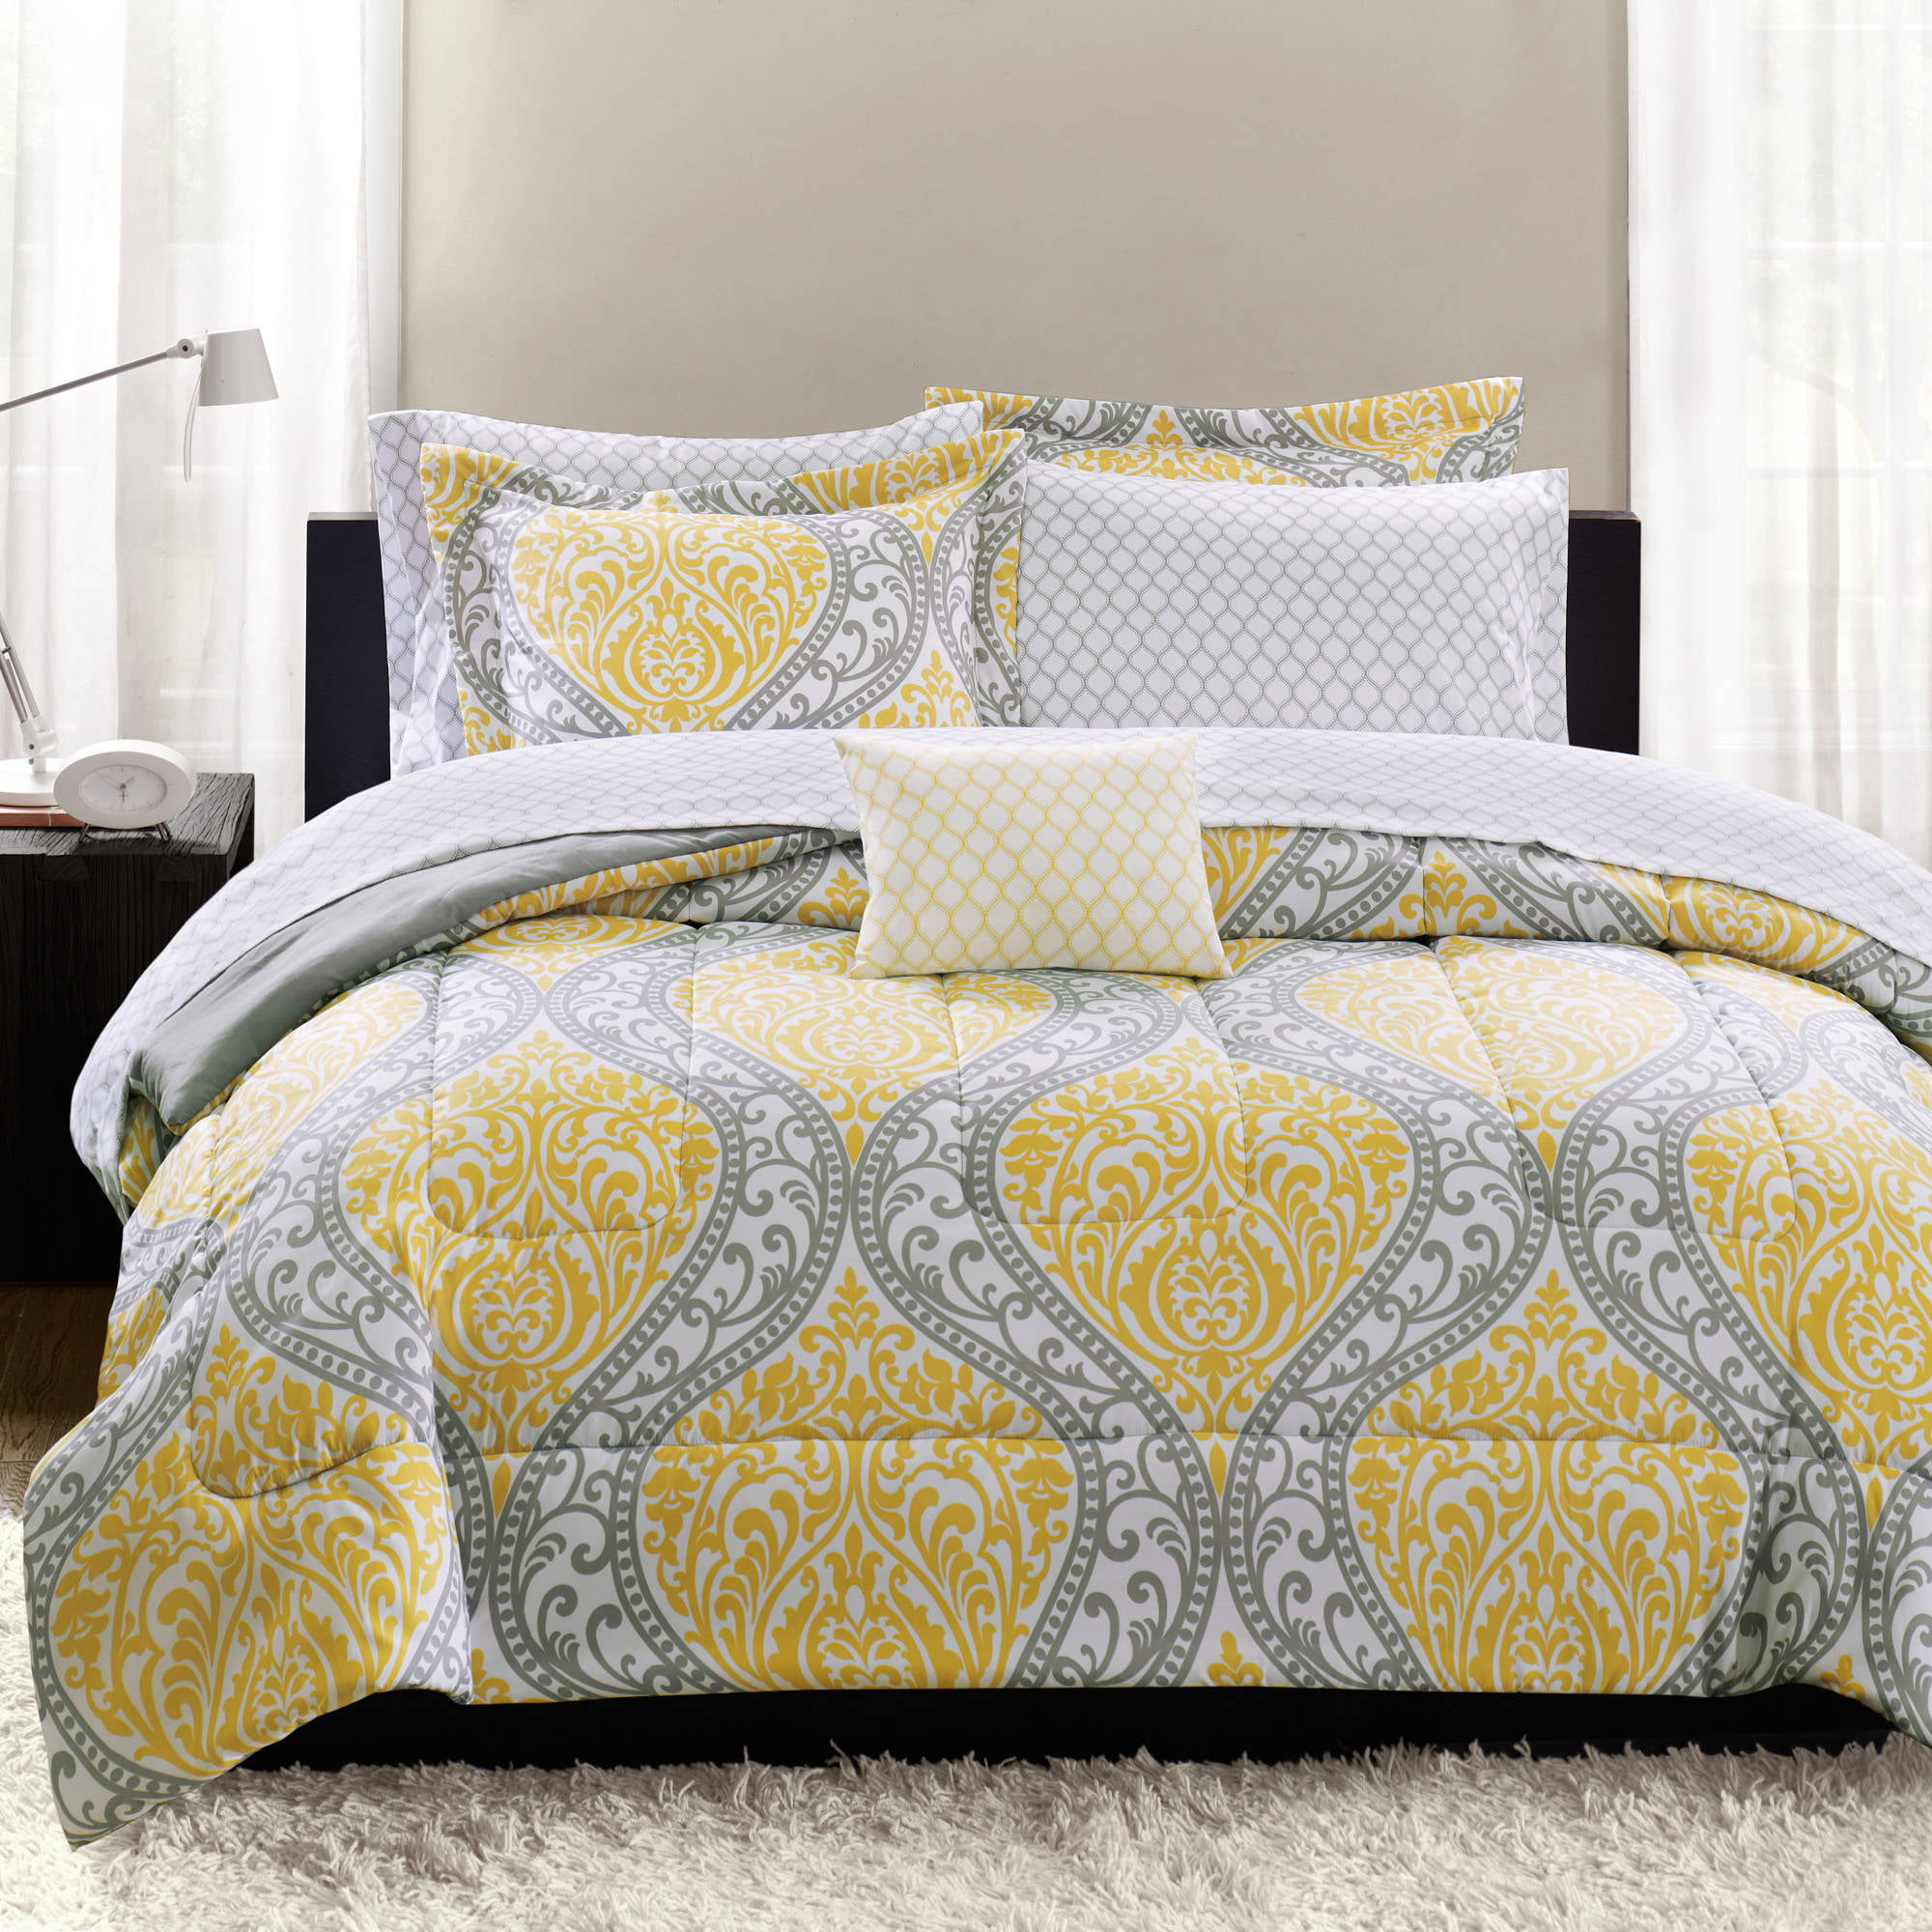 Black and white bedding walmart - Twin